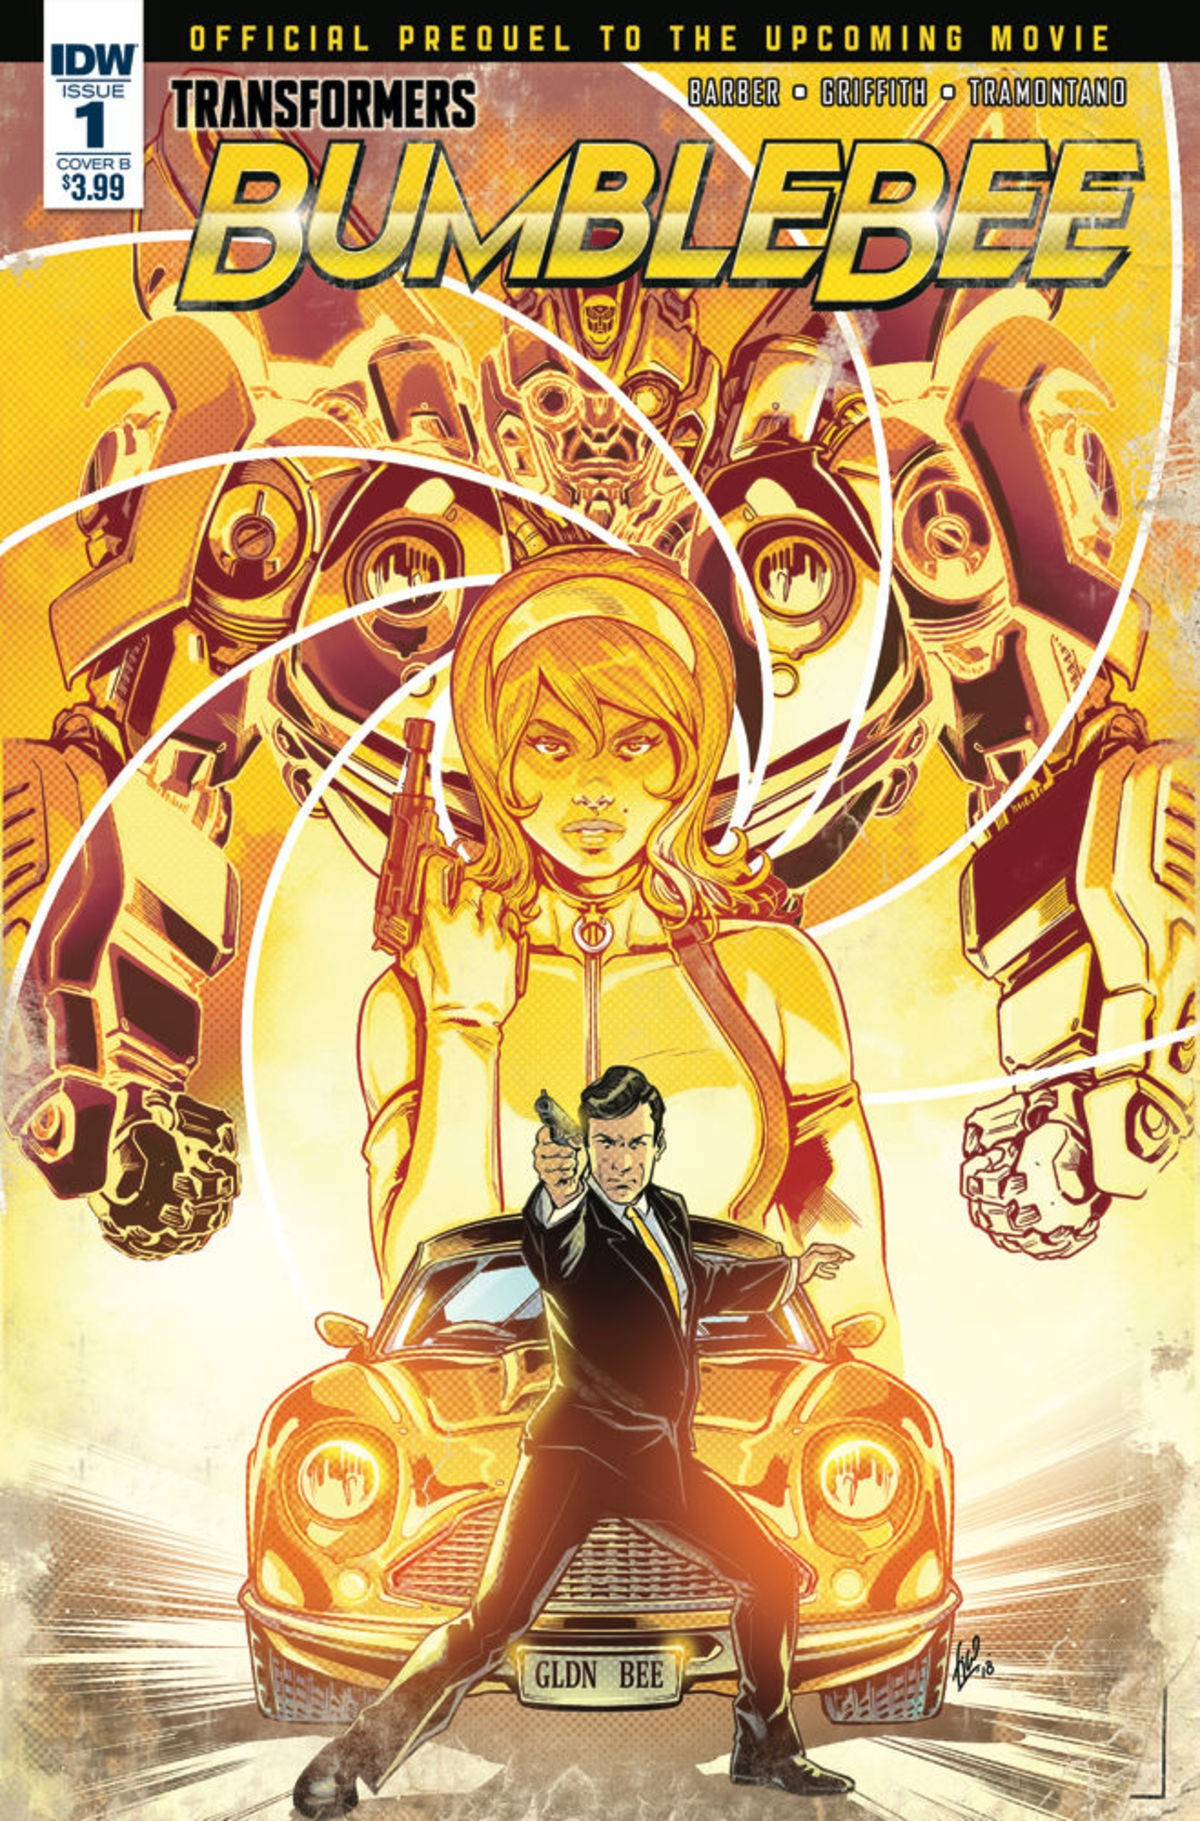 Transformers News: IDW Bumblebee: Movie Prequel #1 Full Preview